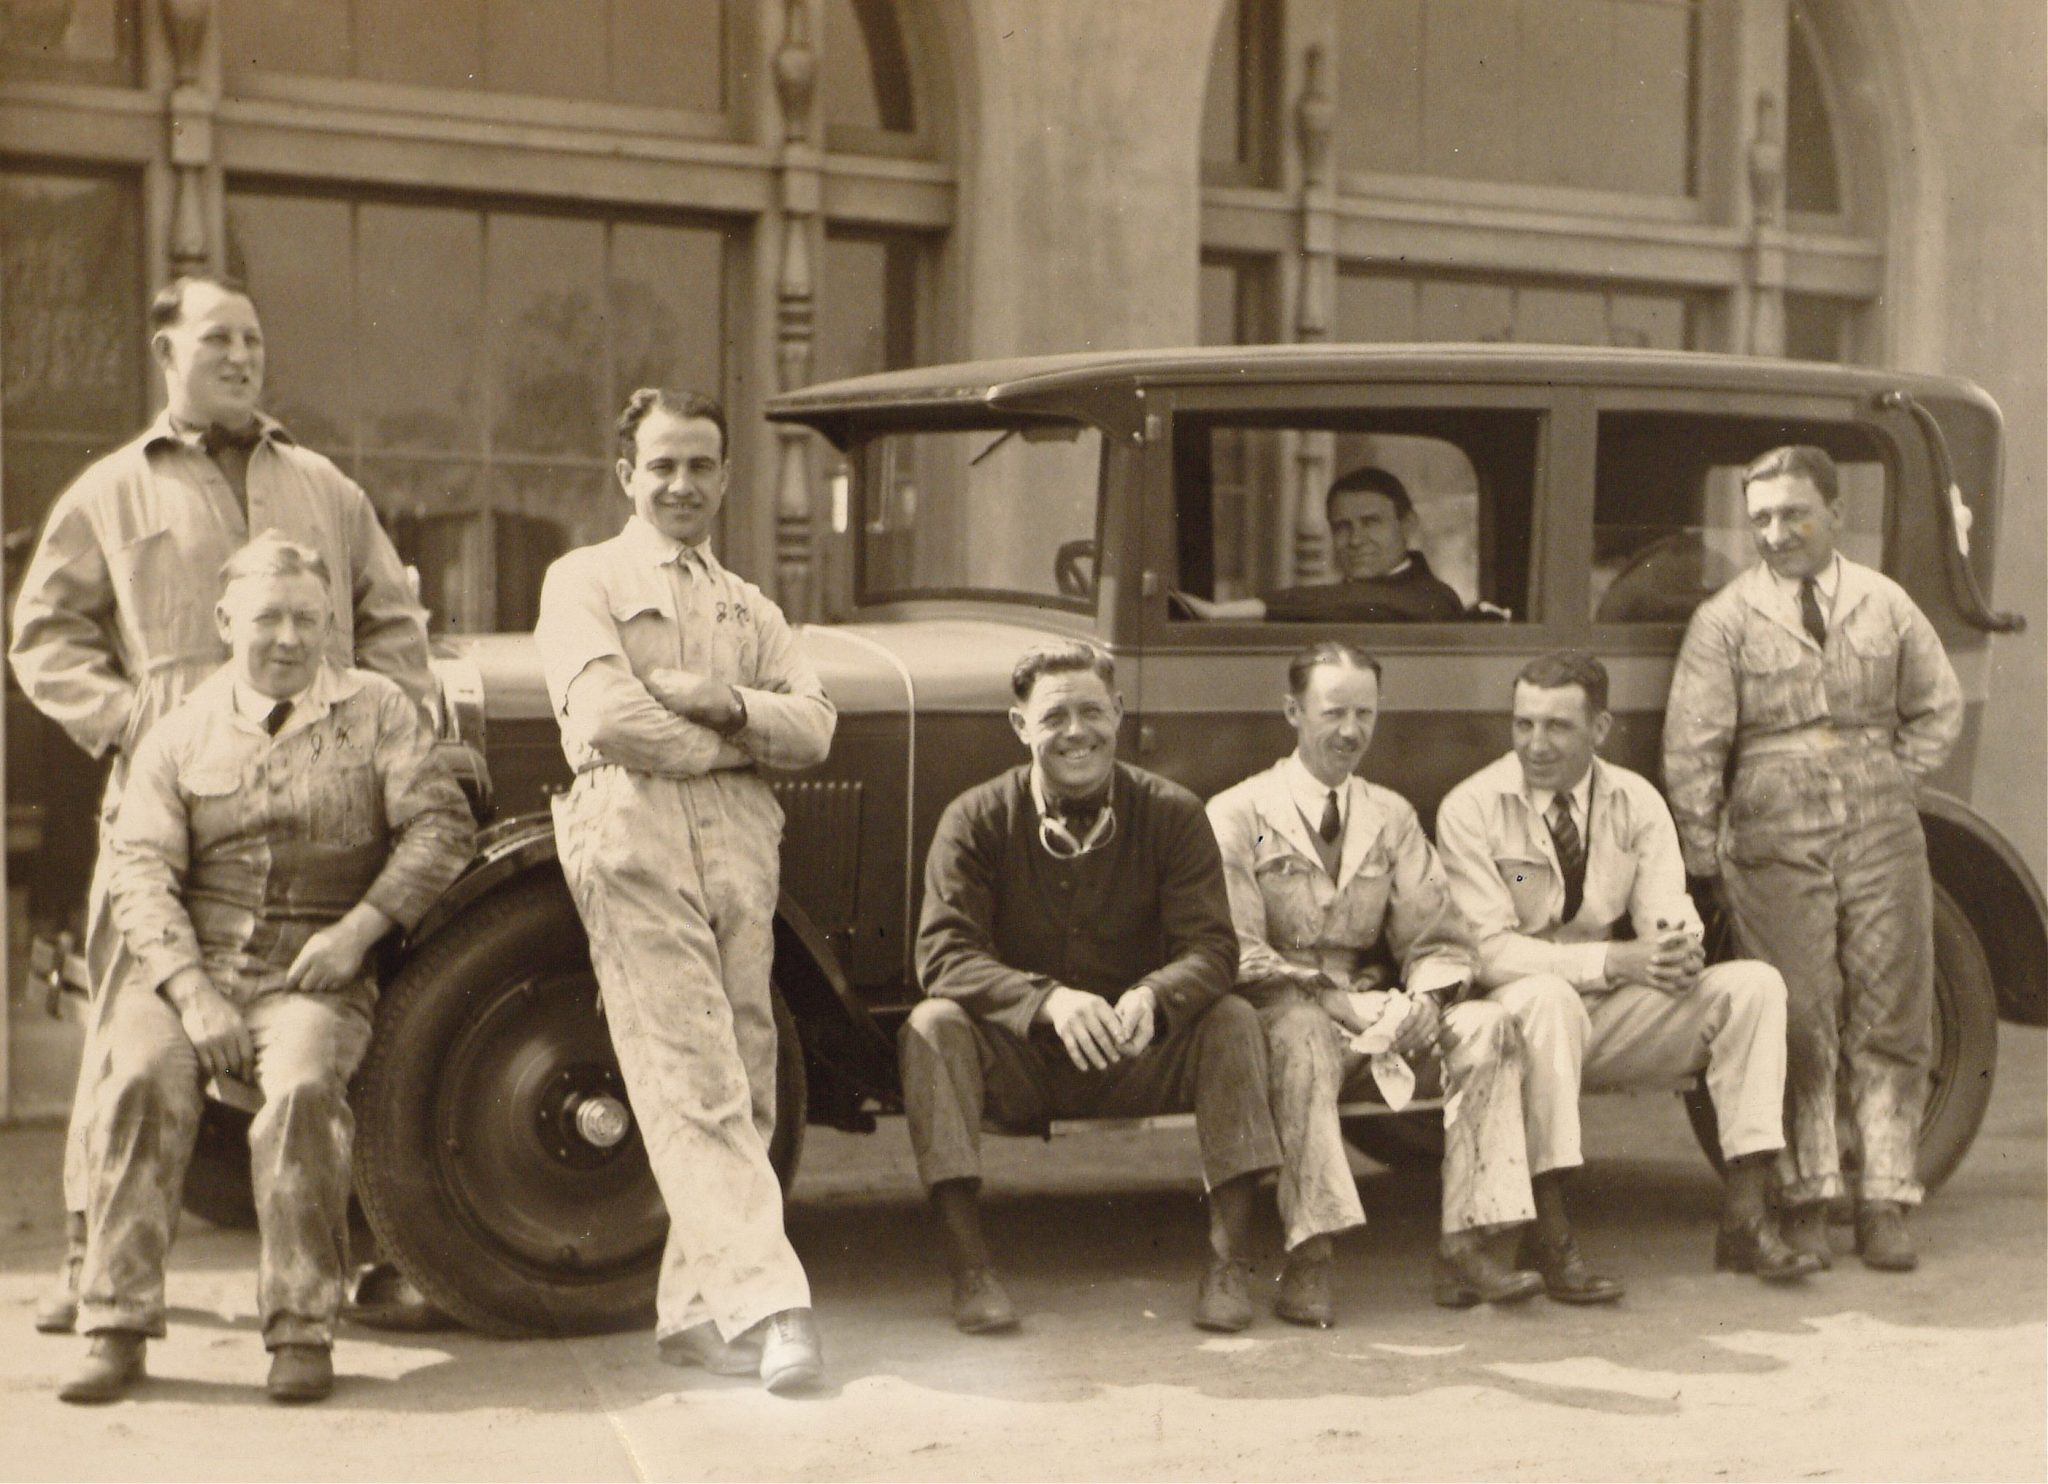 "Augie Duesenberg spent most of his time managing the Duesenberg Brothers racing department. He often hung around with his drivers and is pictured behind the wheel of a new Model A sedan with 1925 Indy 500 winner Peter DePaolo leaning on the left front fender. Also pictured are Babe Doyle (on front bumper), Phil ""Red"" Shafer and Wade Morton."